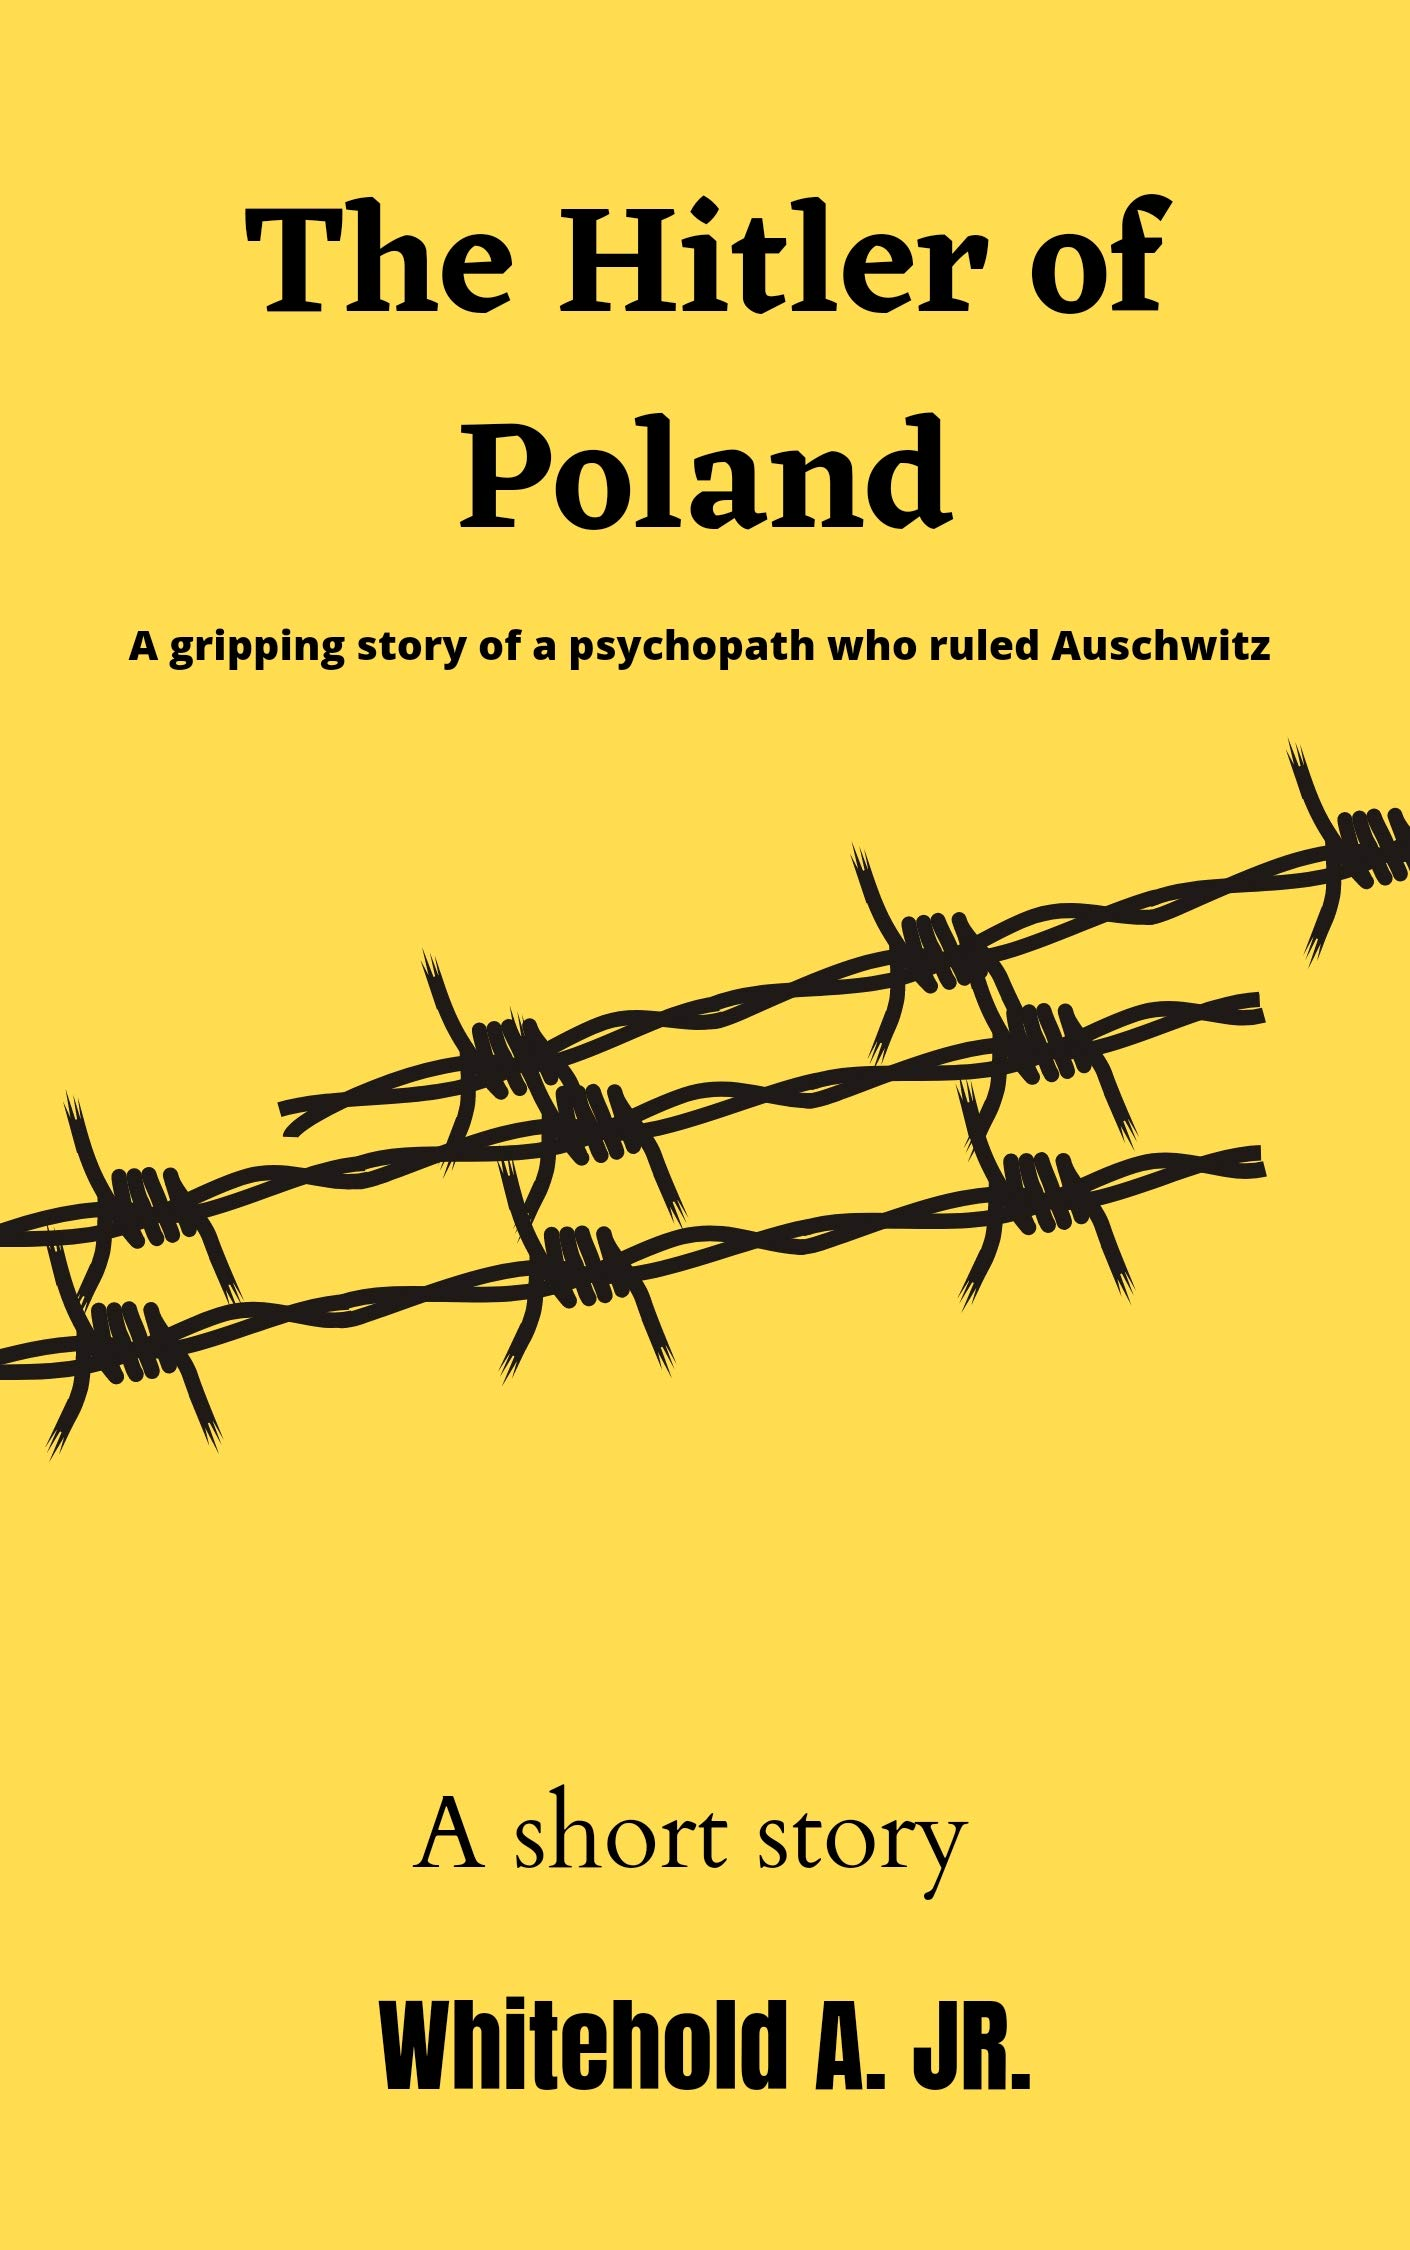 The hitler of Poland: a gripping story of a psychopath that ruled Auschwitz